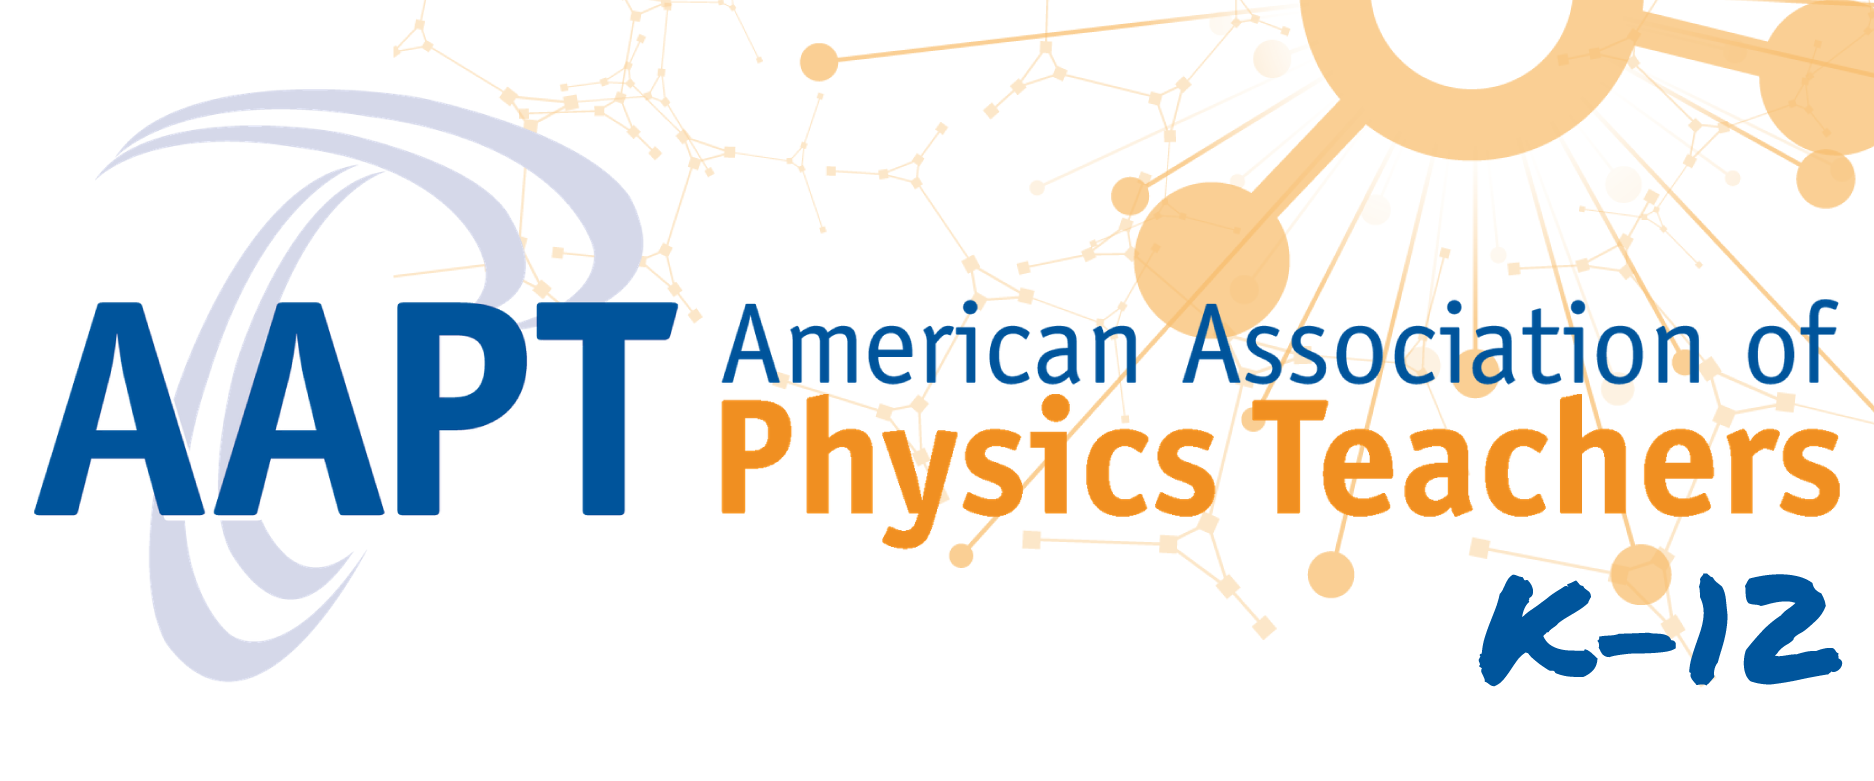 American Association of Physics Teachers